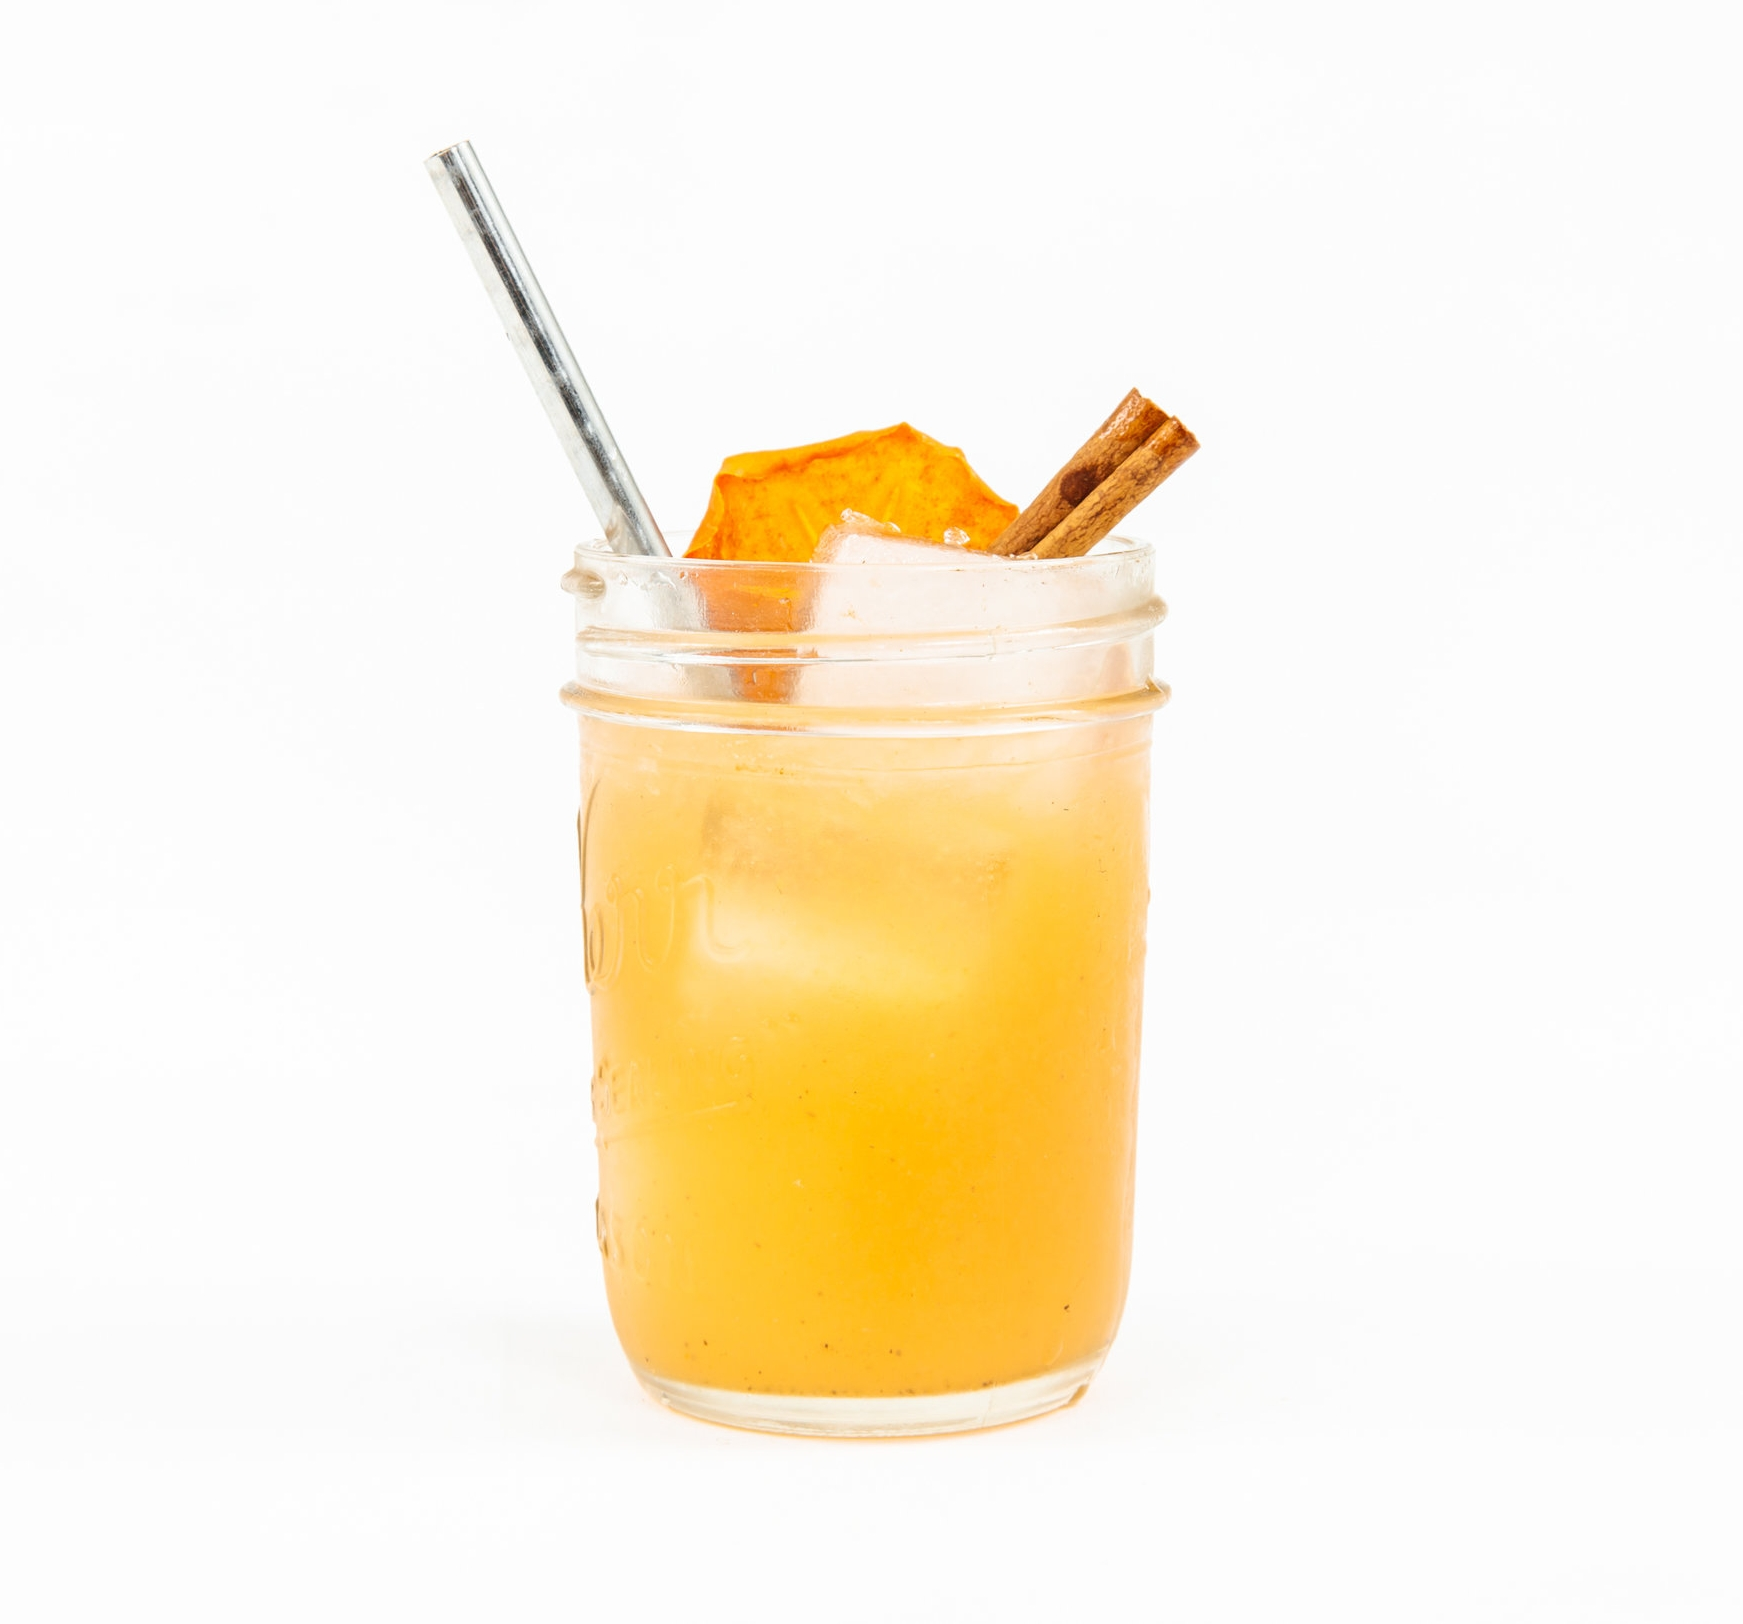 TWO FOR TEA - 3/4 oz nostrum pineapple turmeric ginger shrub1/2 oz fresh orange juice1/2 oz fresh lemon juice1/4 oz honey syrup4 oz black teadirections: shake with ice and strain.